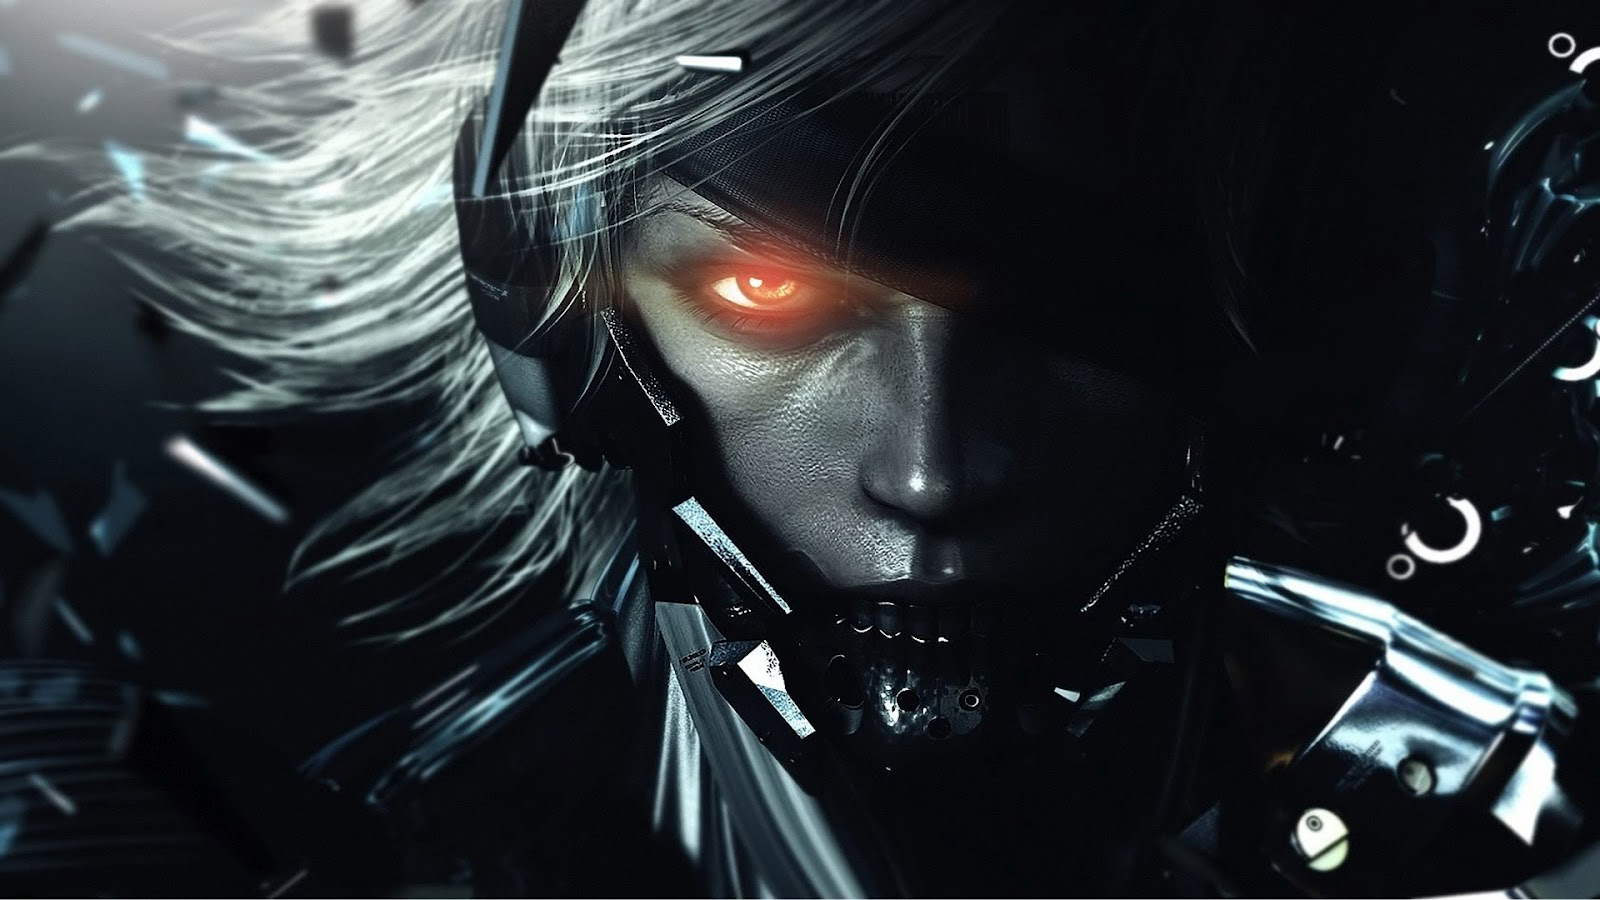 metal gear hd wallpapers - photo #9